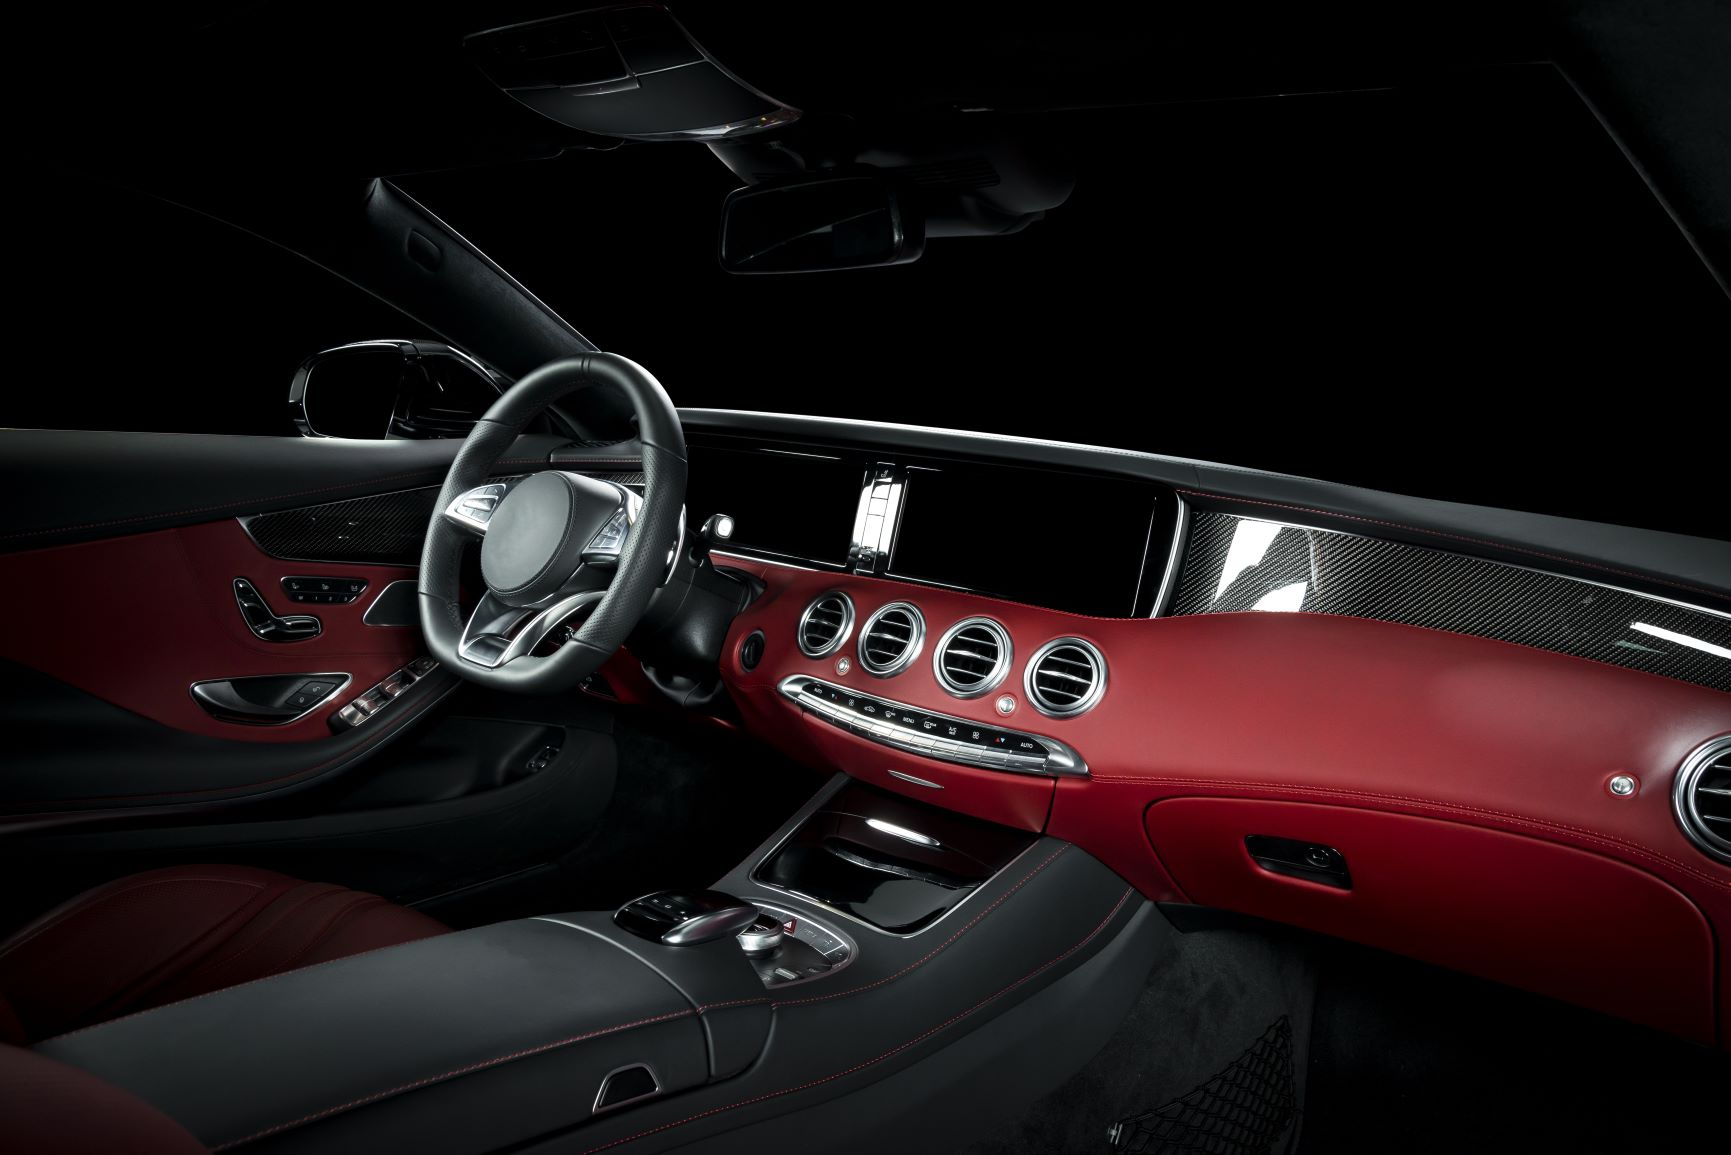 SoForm for automotive interior surfaces